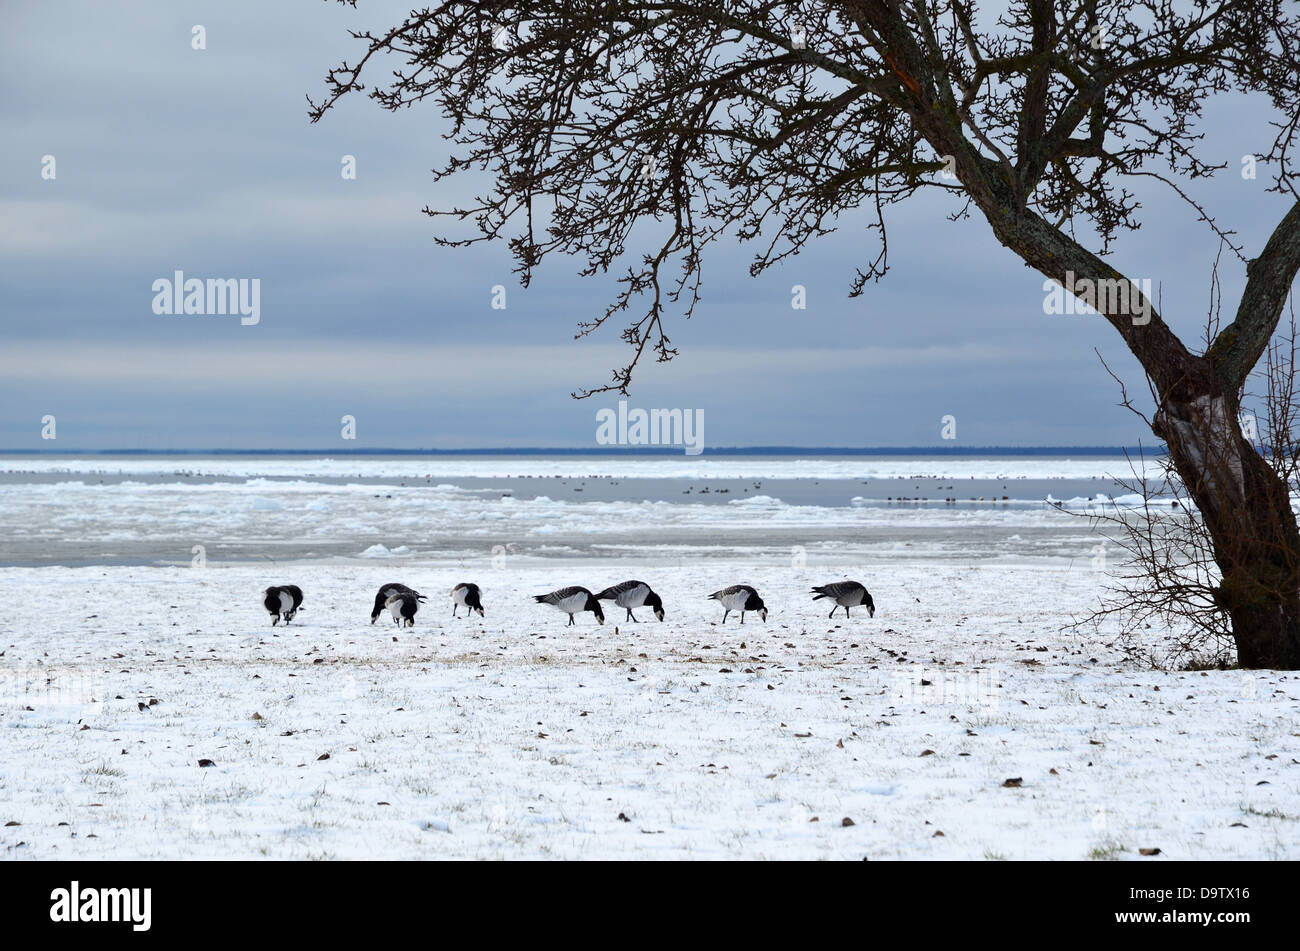 Grazing geese in snow - Stock Image